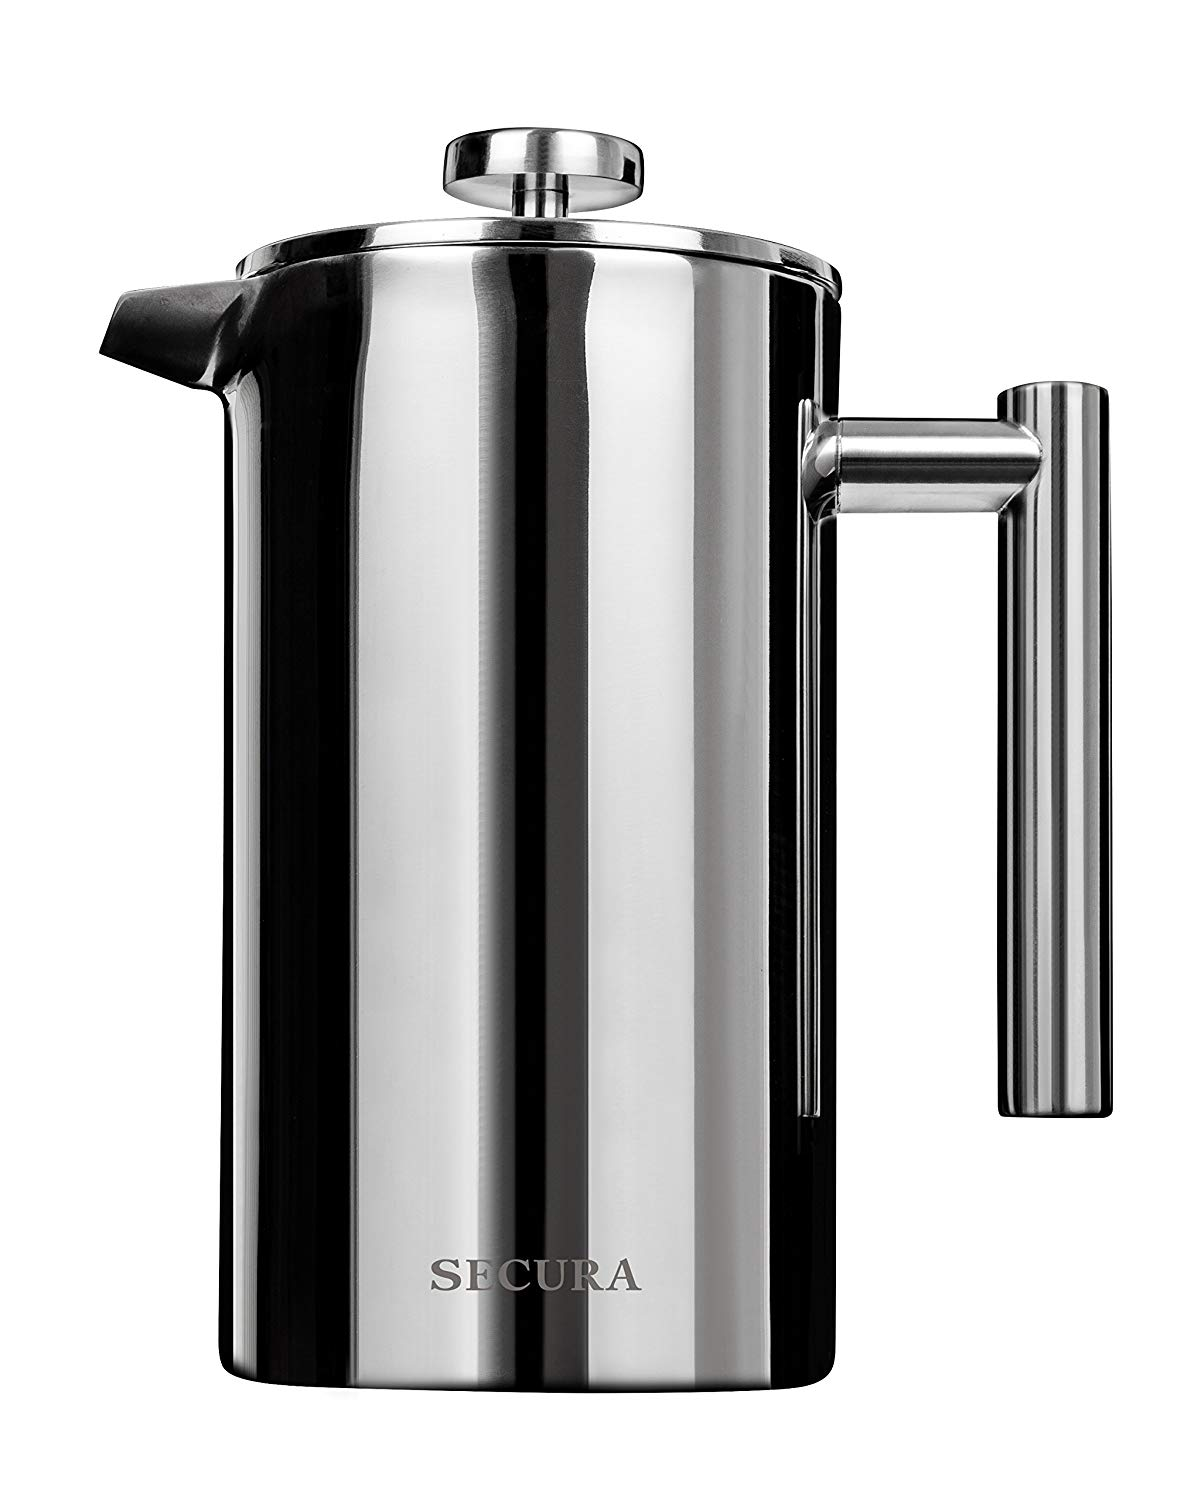 Secura Stainless Steel French Press Coffee Maker 18/10 Bonus Stainless Steel Screen (1000ML)